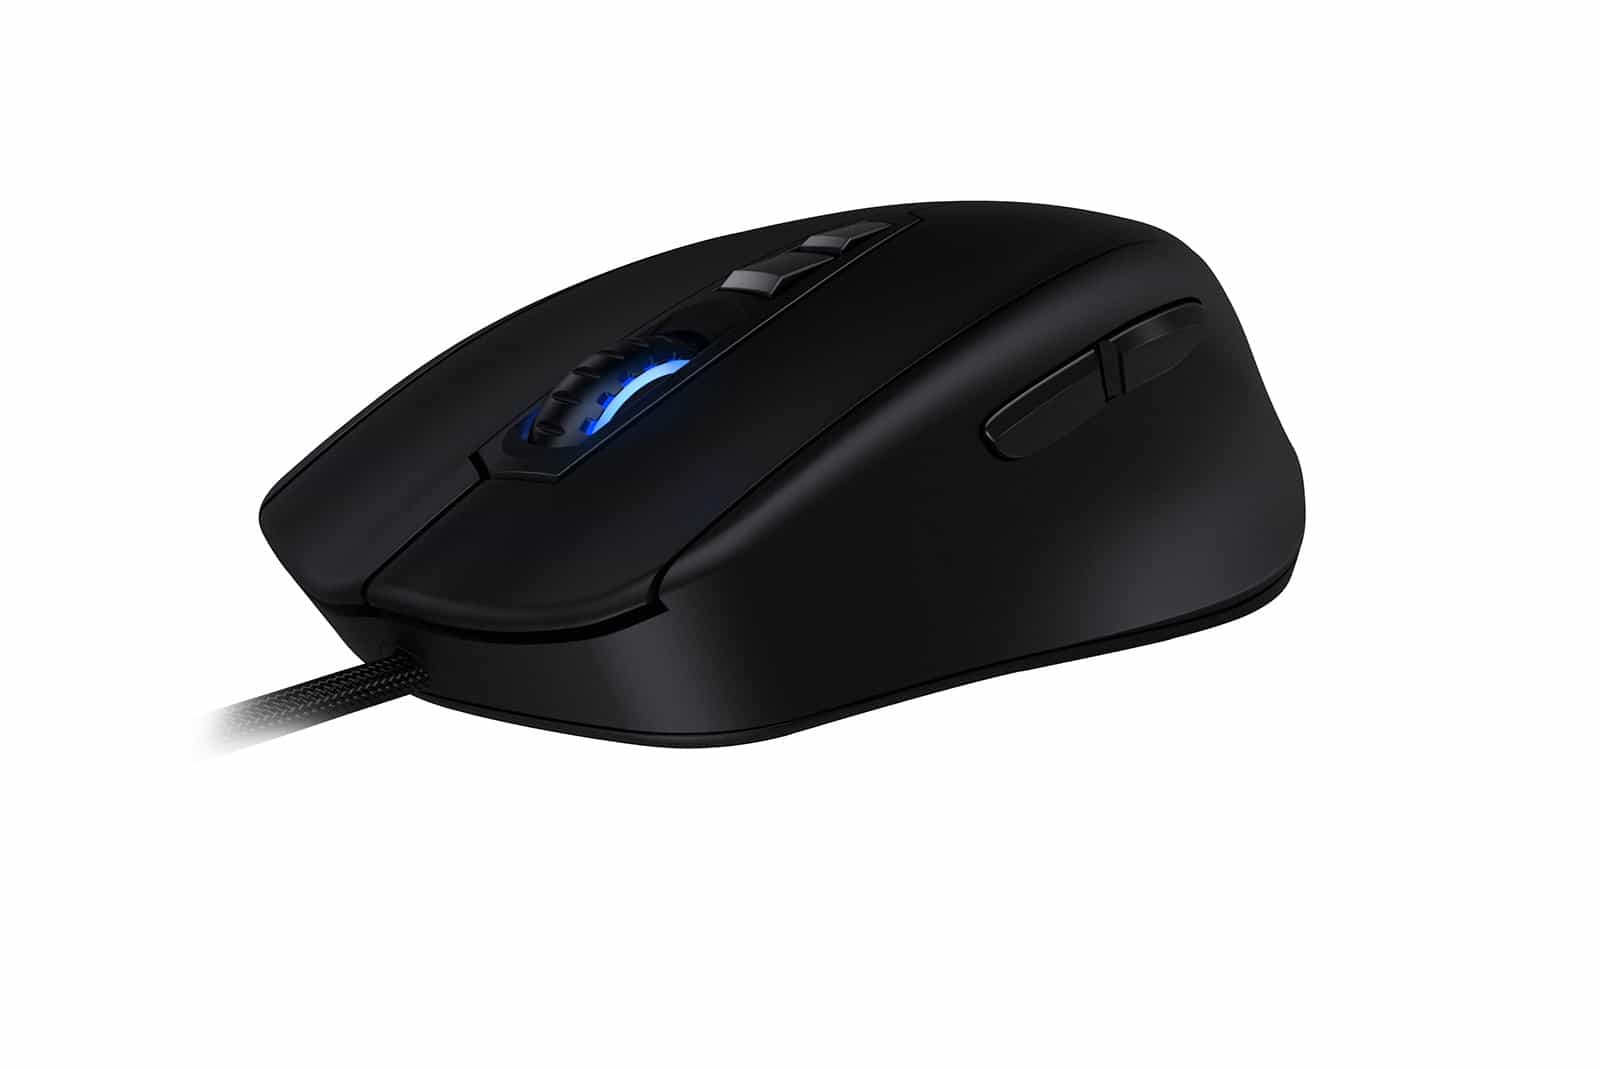 The MIONIX NAOS 7000 Gaming Mouse - Smooth Movement in the Palm of Your Hand